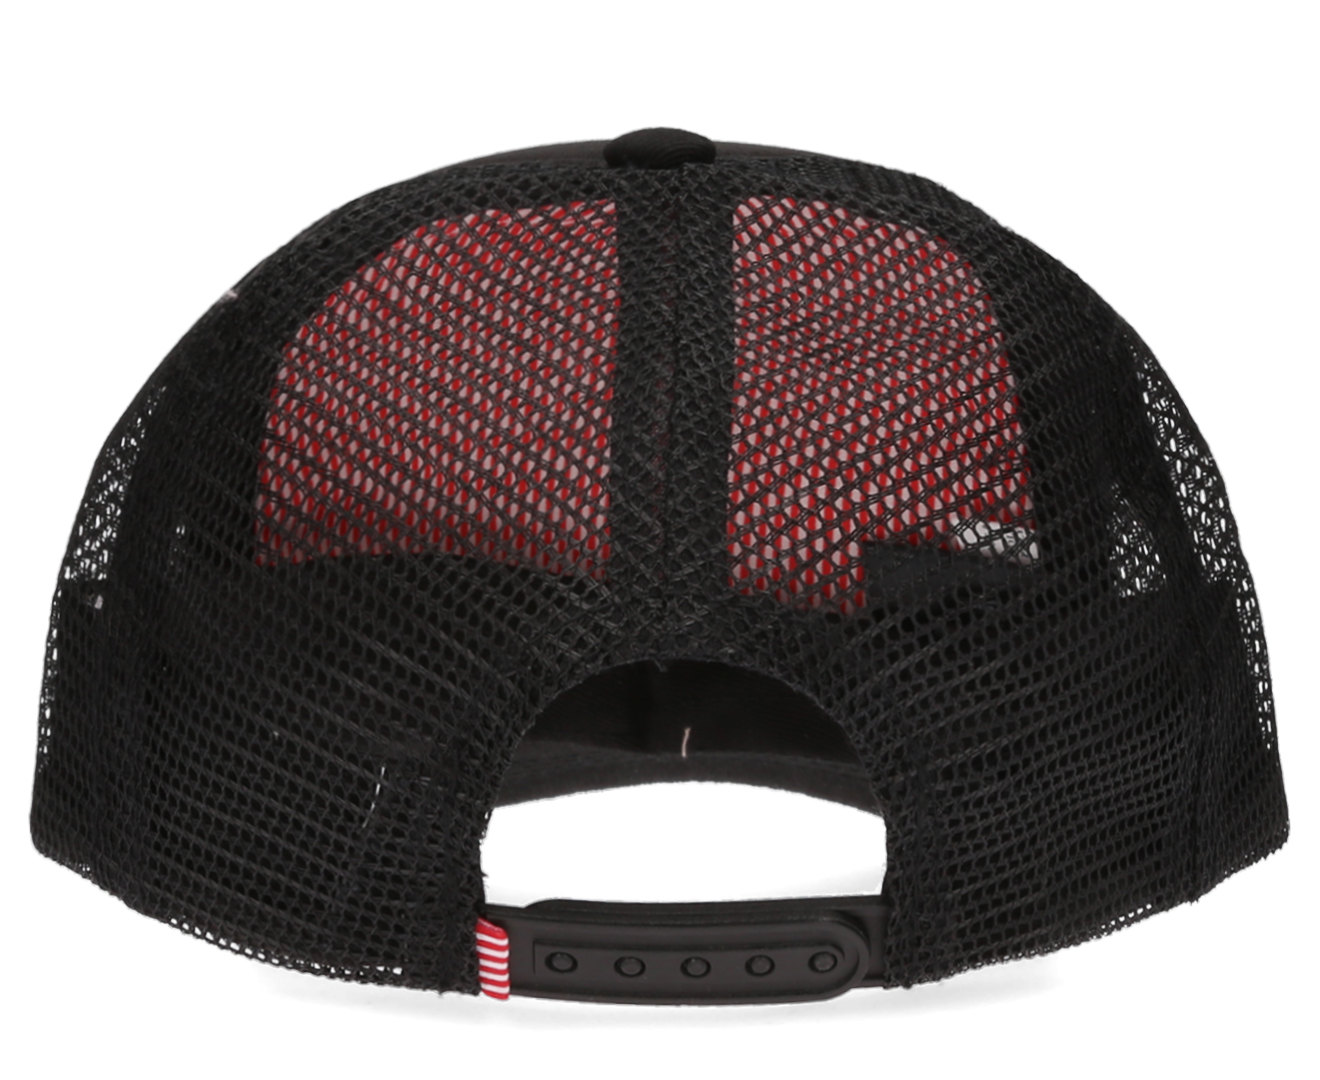 6ced79f54eab3 Herschel Supply Co. Baby Toddler Sprout Whaler Mesh Cap - Black ...